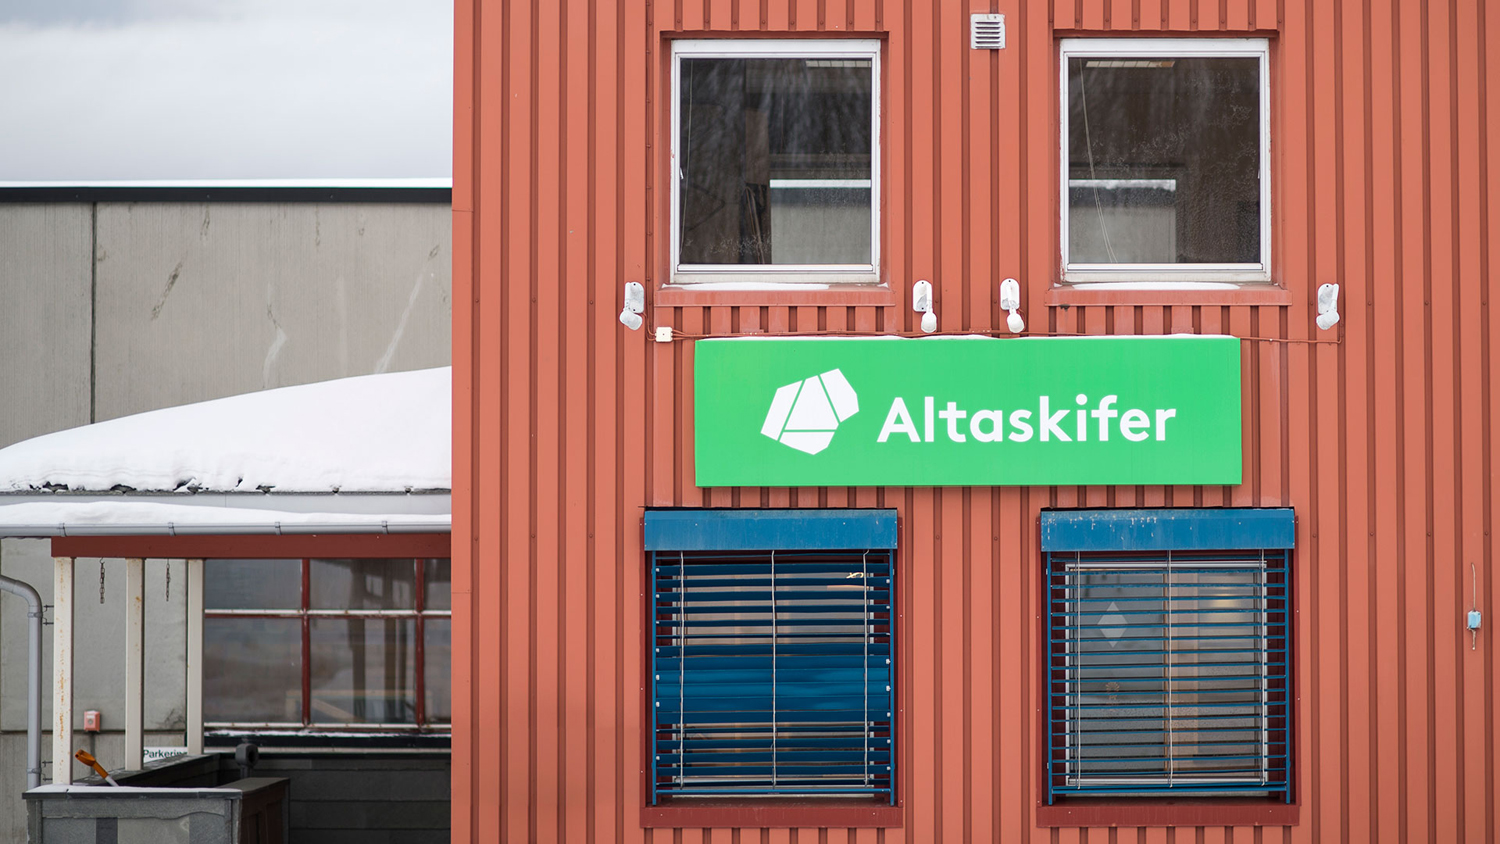 Brand identity and signage for Alta Quartzite mining and sales business Altaskifer designed by Neue, Norway